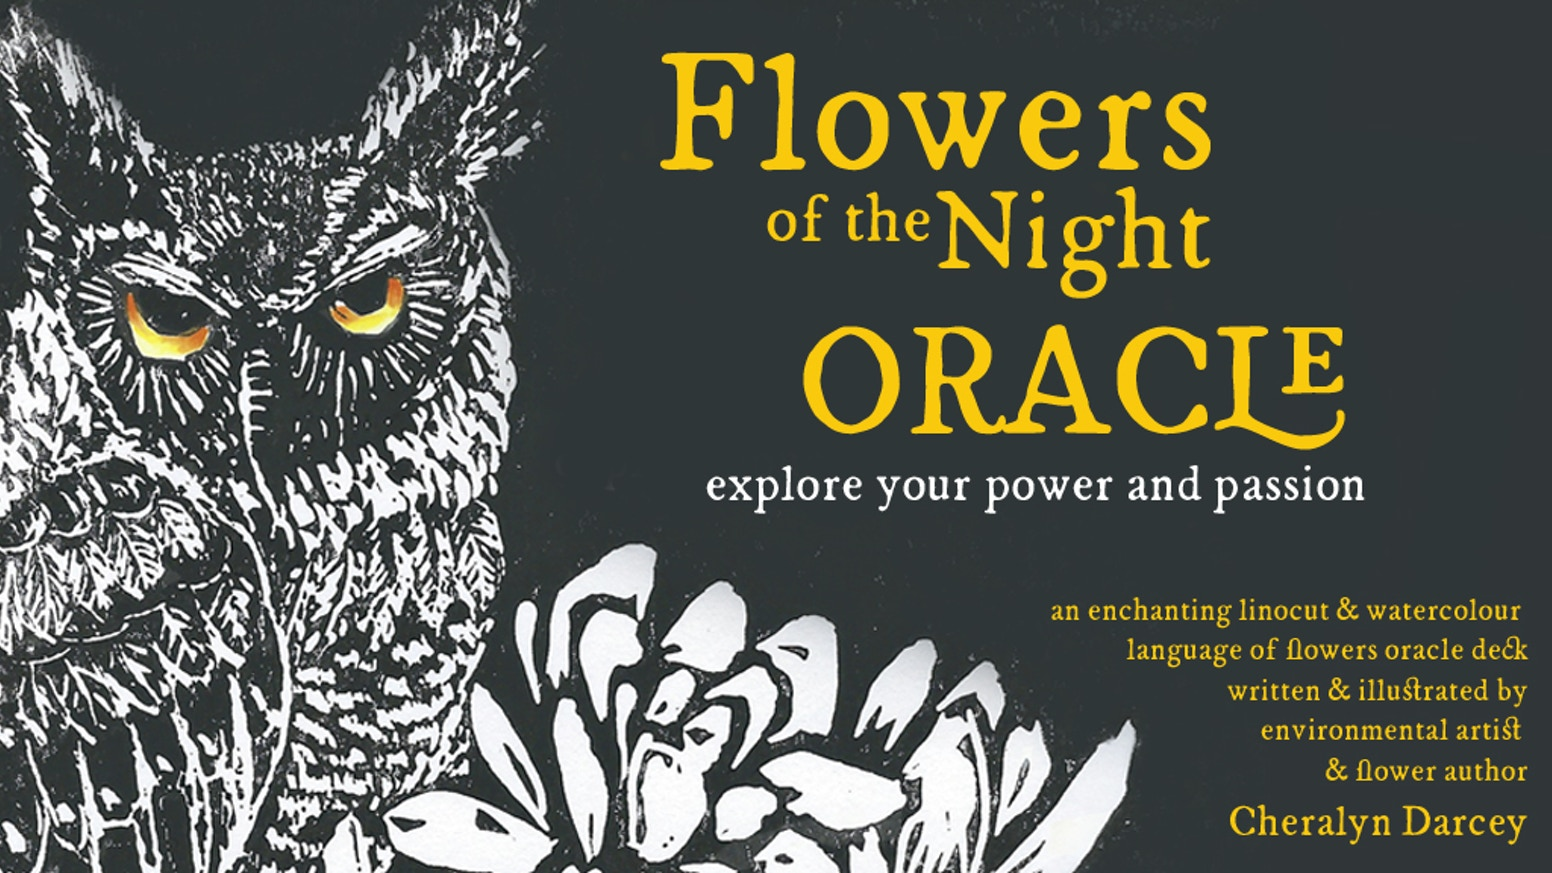 Venture into the enchanting realm of the Flowers of the Night  and explore your Passion & Power with this Language of Flowers Oracle.